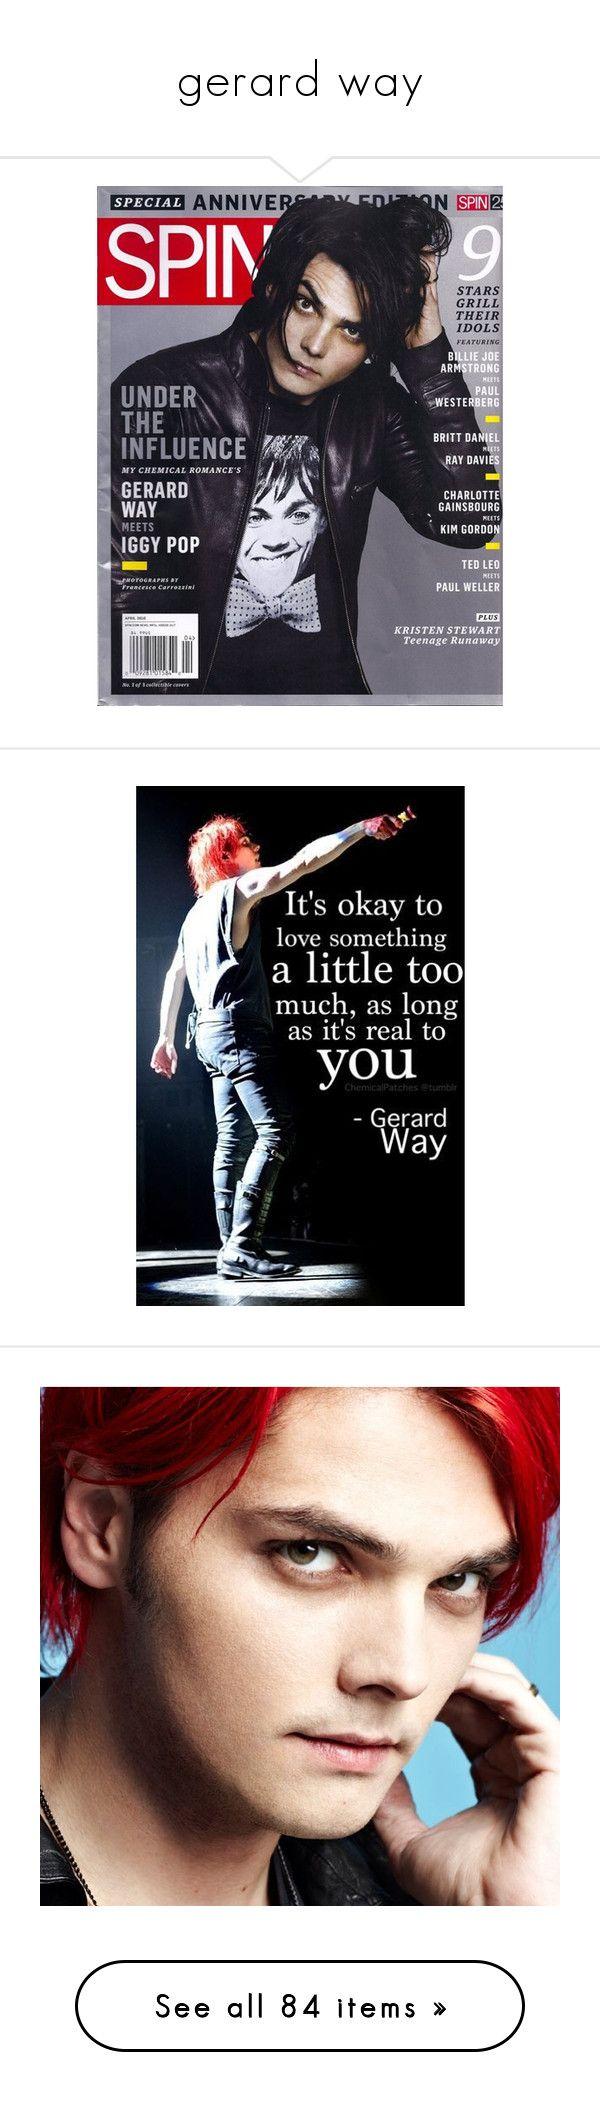 """gerard way"" by briana-is-hungry ❤ liked on Polyvore featuring mcr, my chemical romance, pictures, people, accessories, gerard way, words, quotes, phrase and saying"